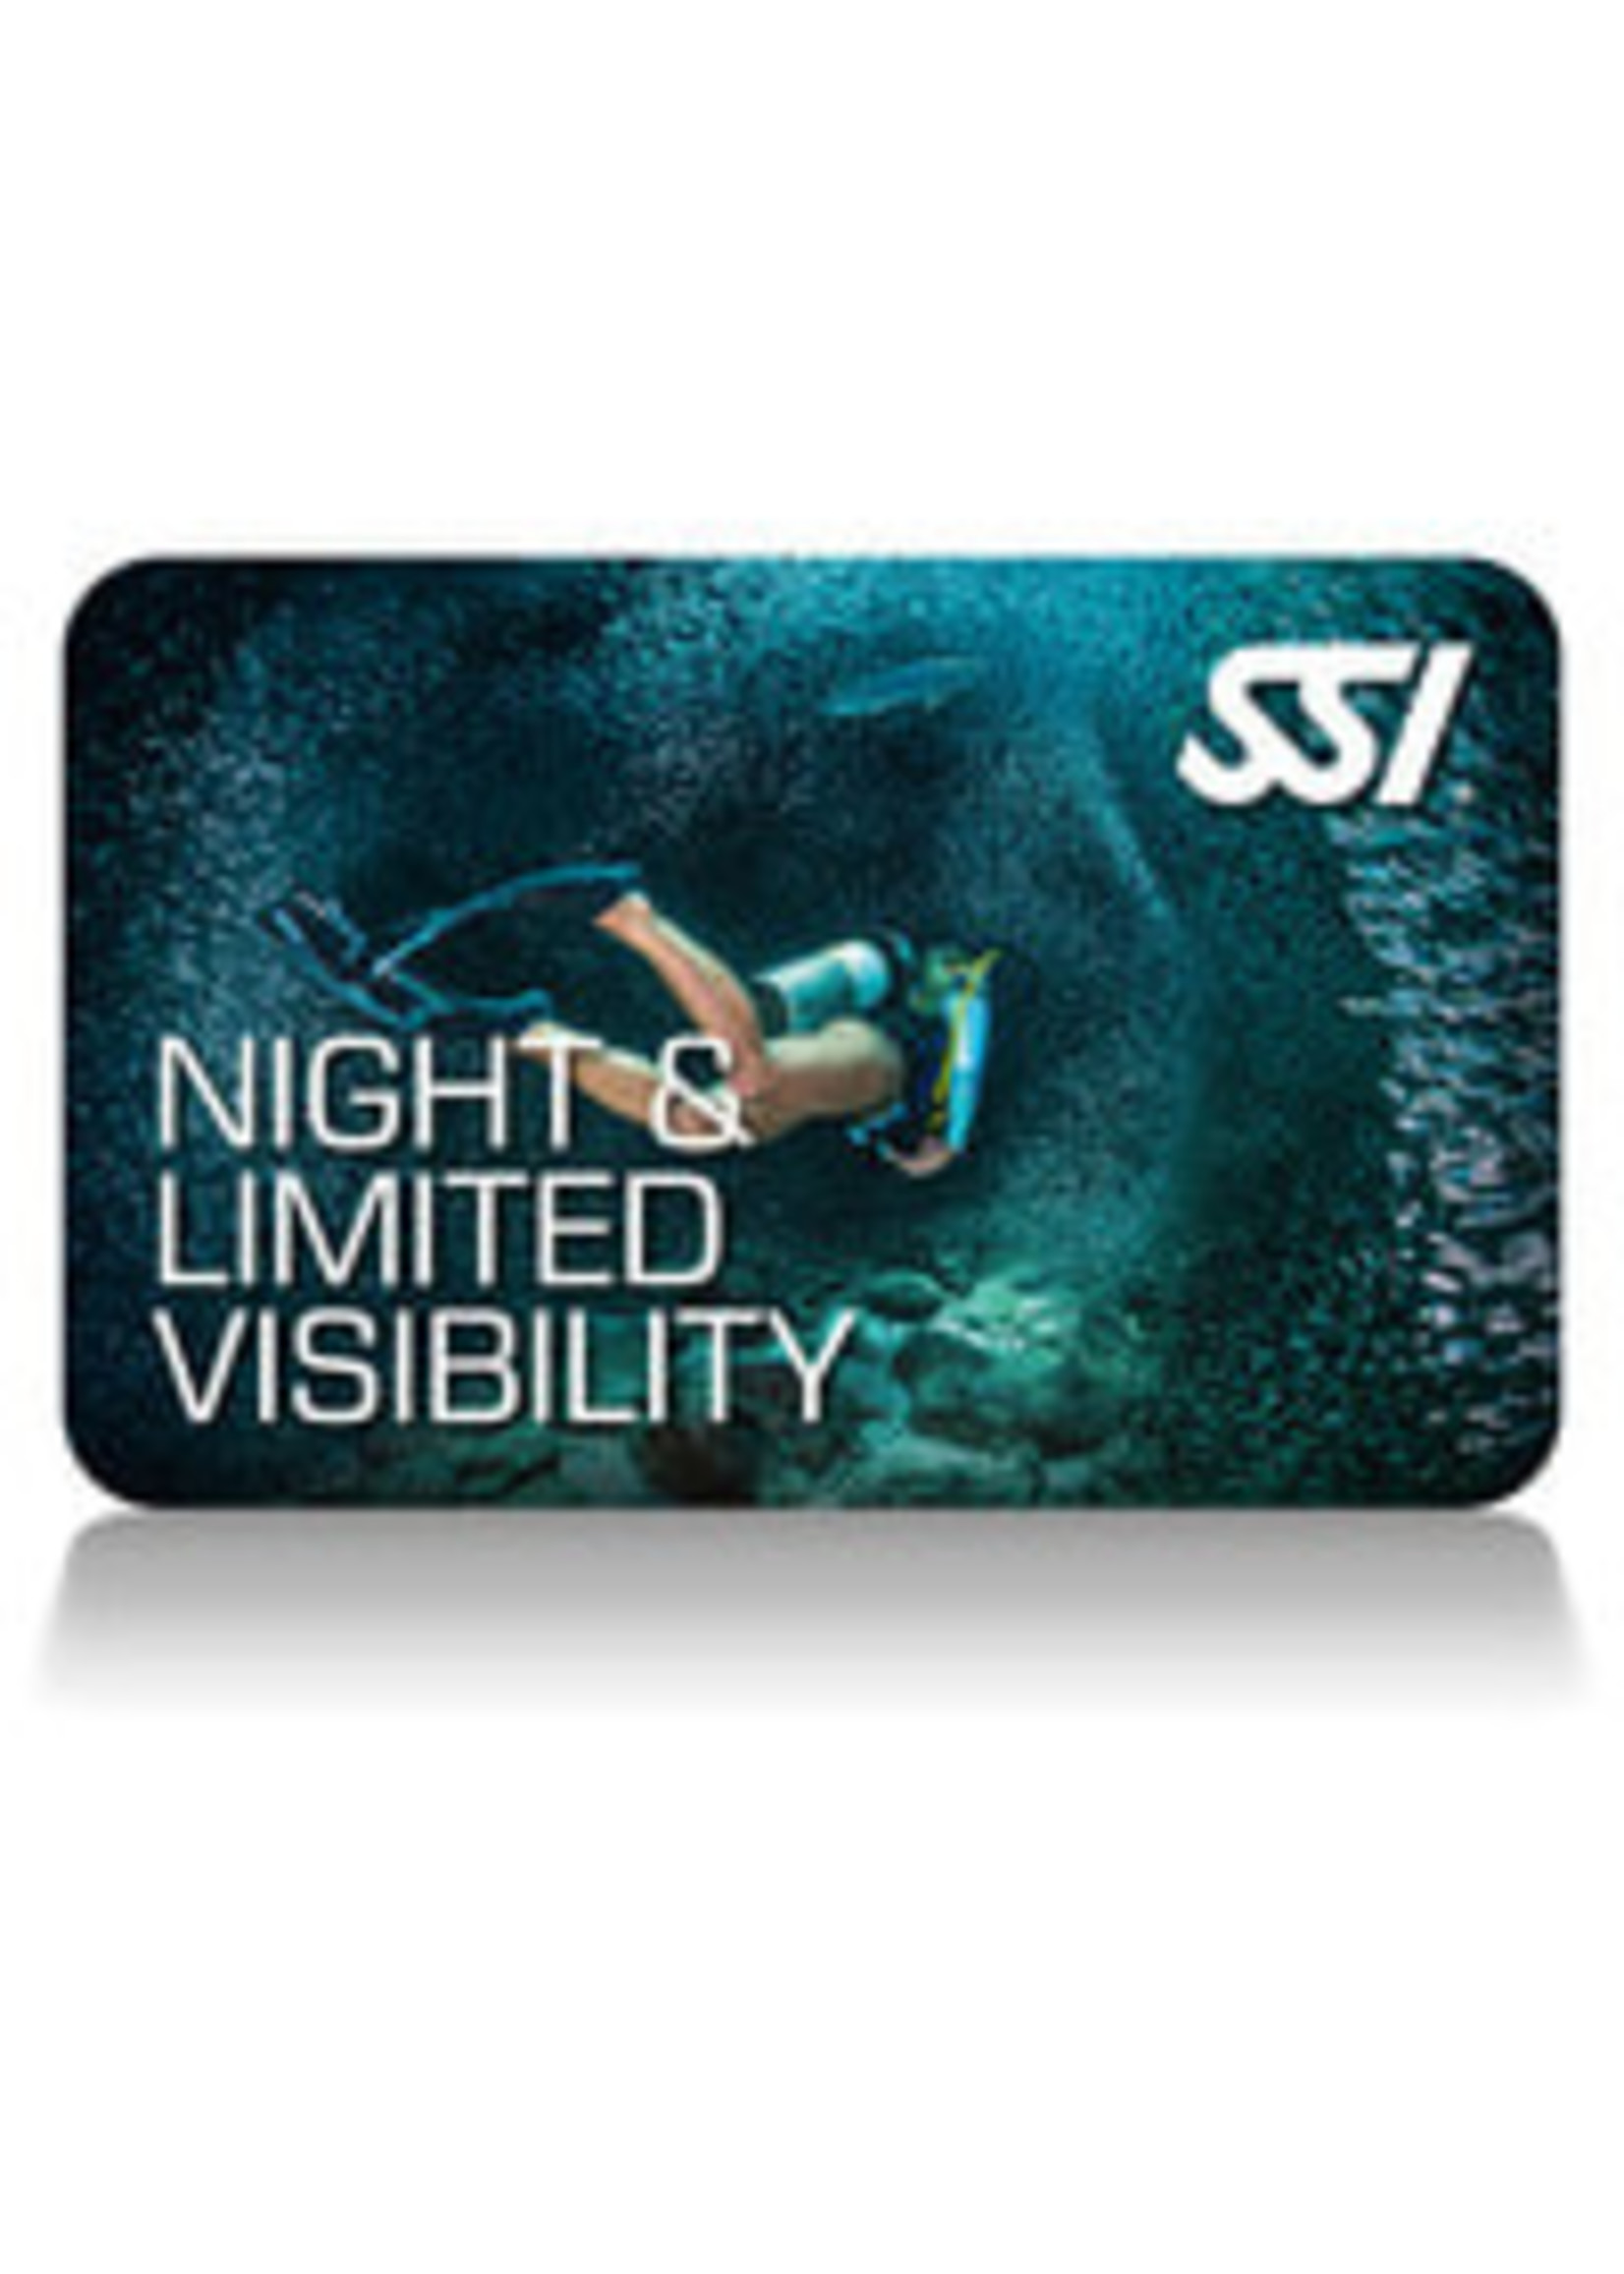 SSI Night and limited visibility Diving Specialty